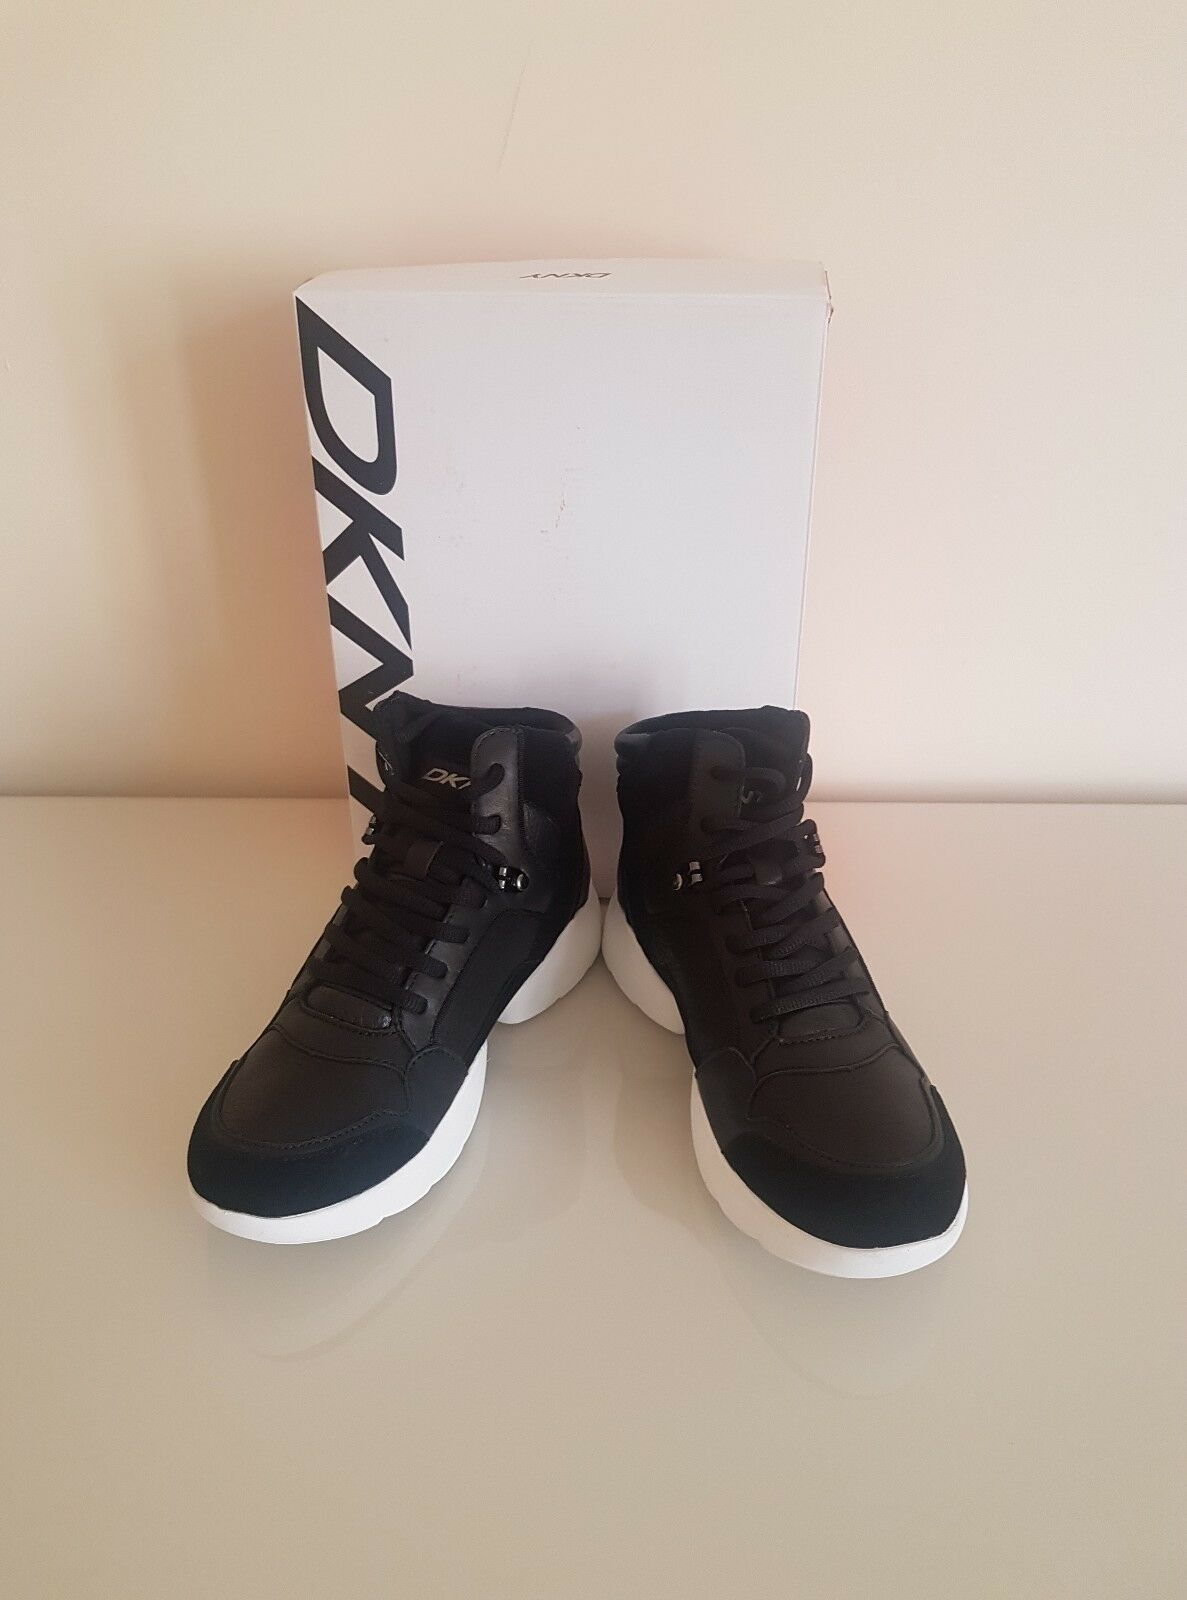 DKNY Women's Paisley suede-paneled leather sneakers Size 5UK - 7.5US - 38 EU